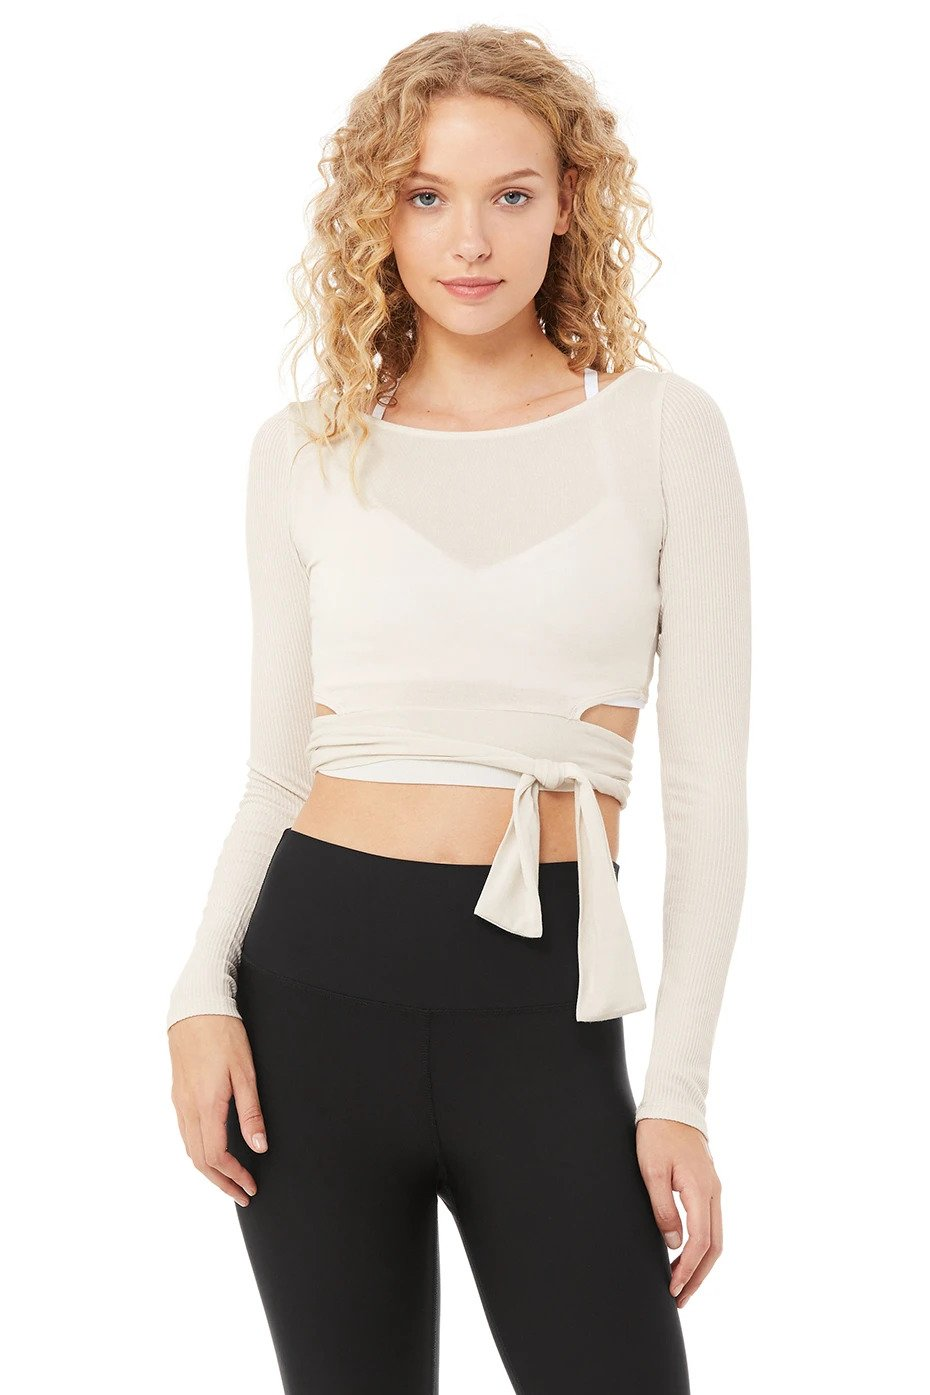 Alo Yoga XS Barre Long Sleeve - Bone